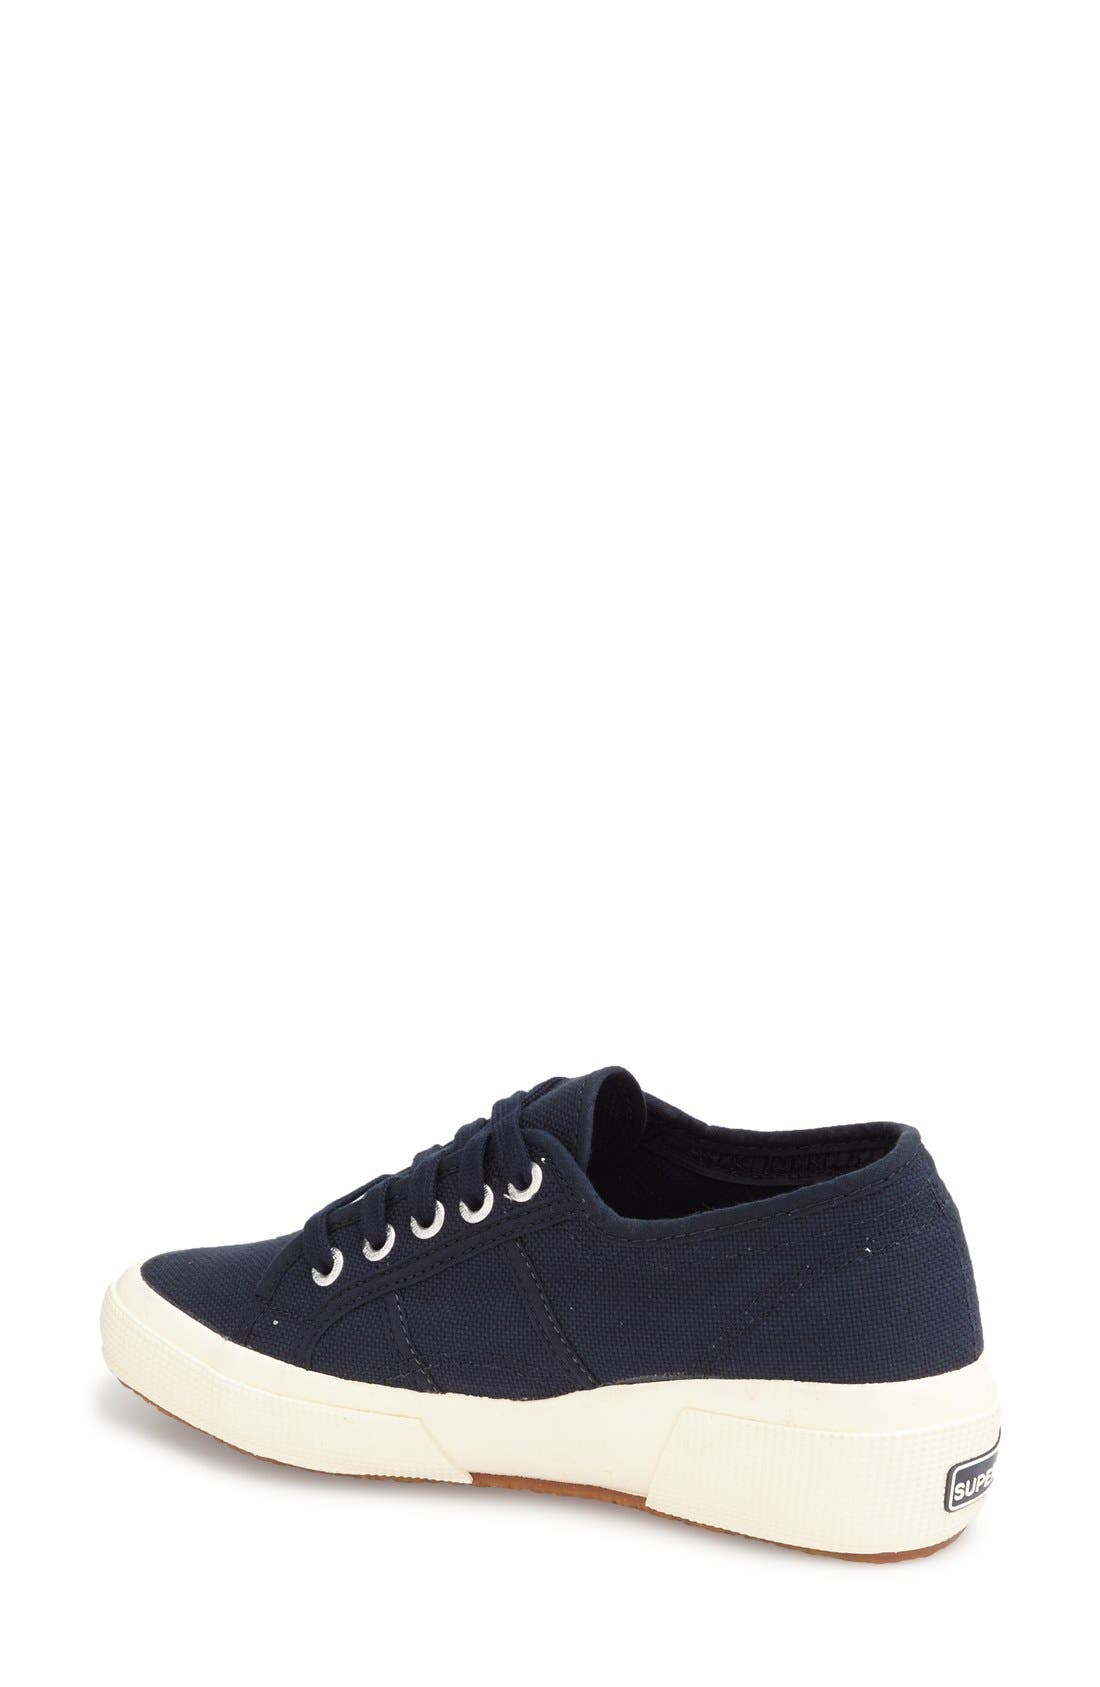 'Linea' Wedge Sneaker,                             Alternate thumbnail 2, color,                             Navy